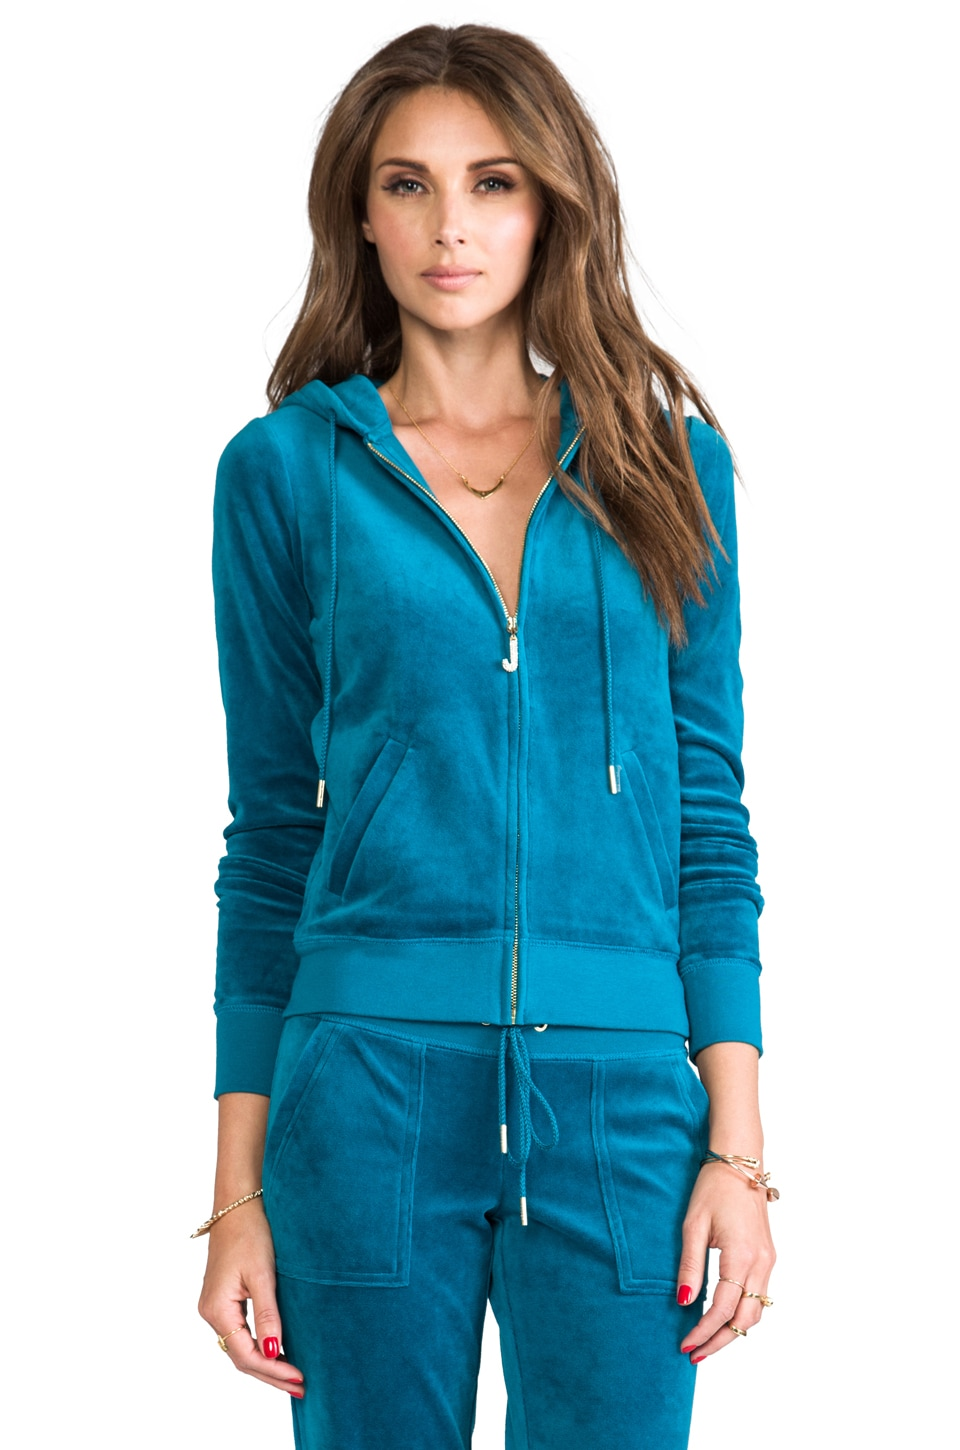 Juicy Couture J Bling Hoodie in Jade